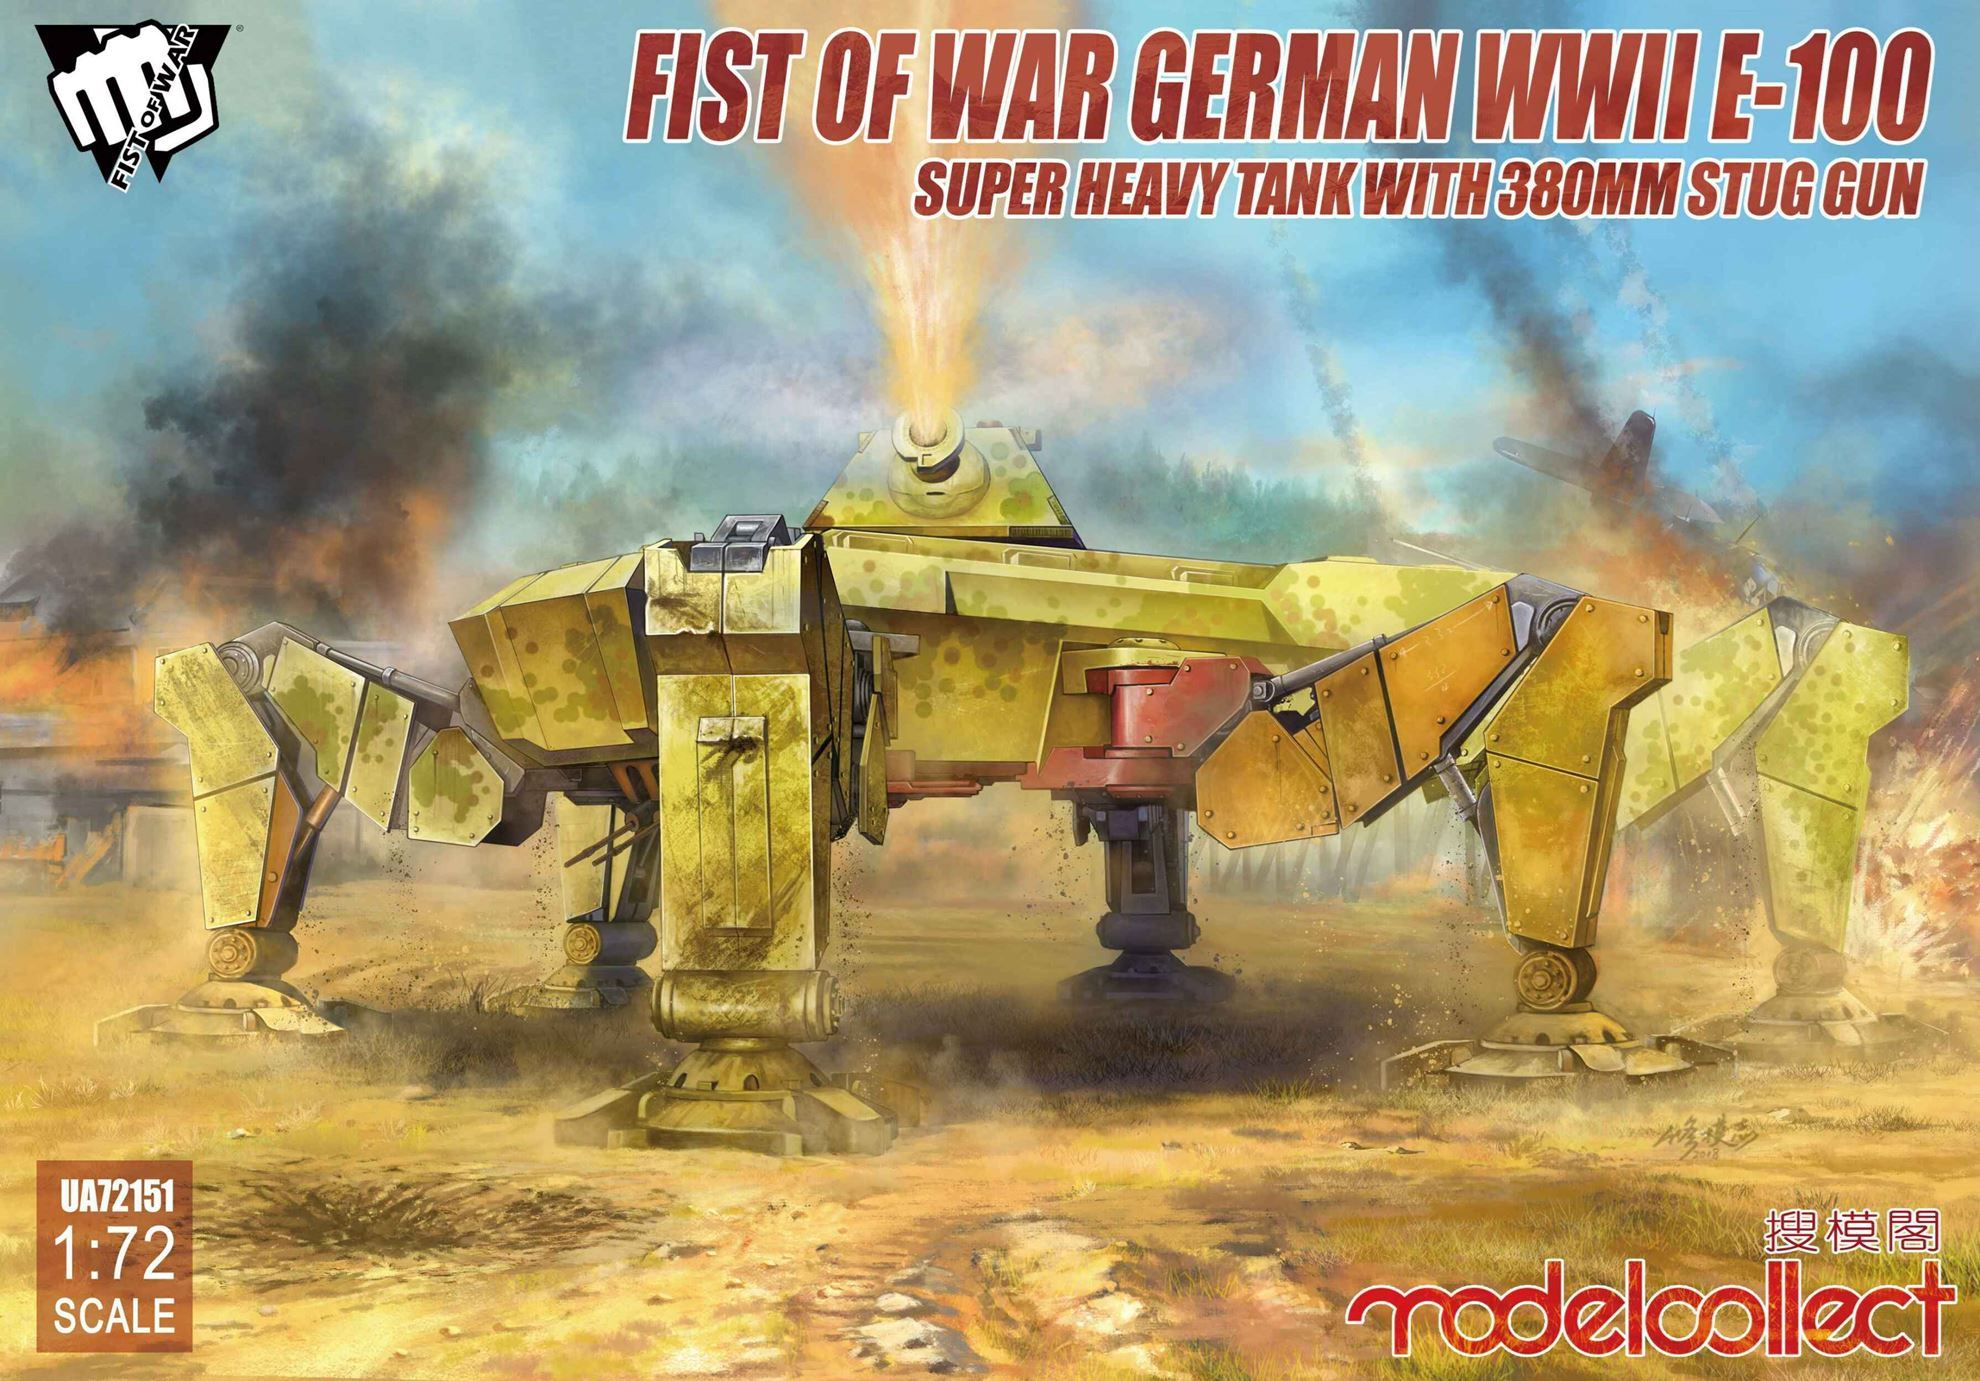 ModelCollect Fist of War German WWII E-100 Super Heavy Tank with 380mm stug gun